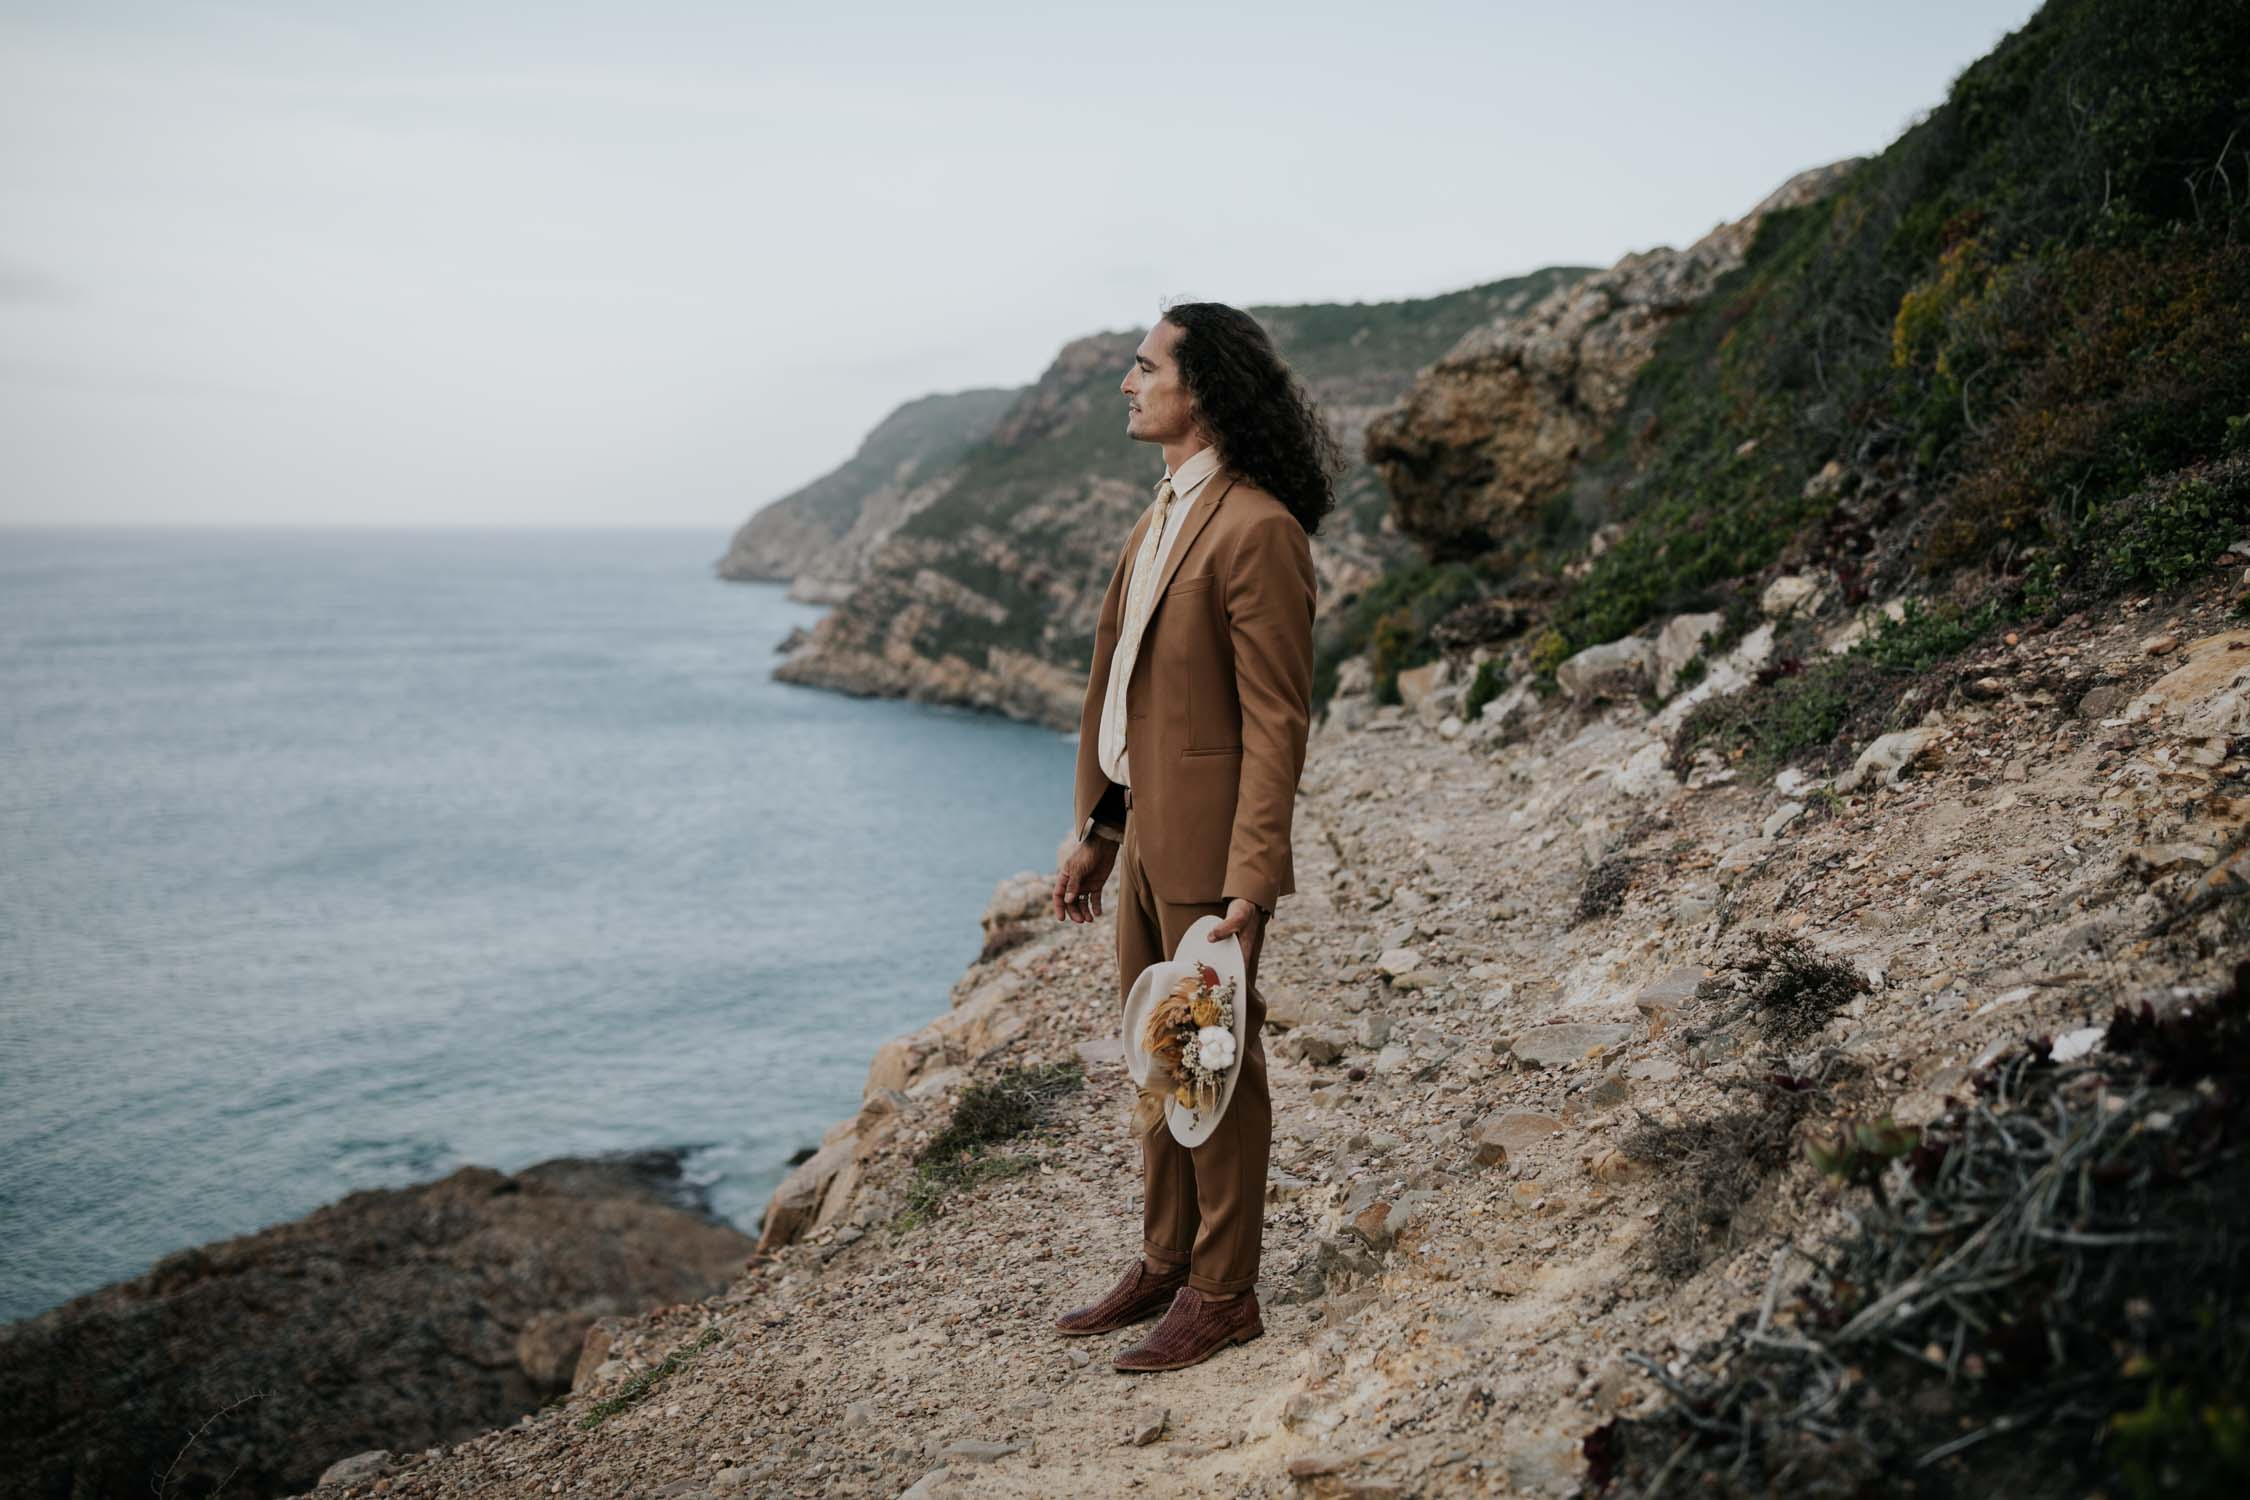 Bohemian groom with long curly hair wears brown suite, beige shirt and felt hat looks at the ocean